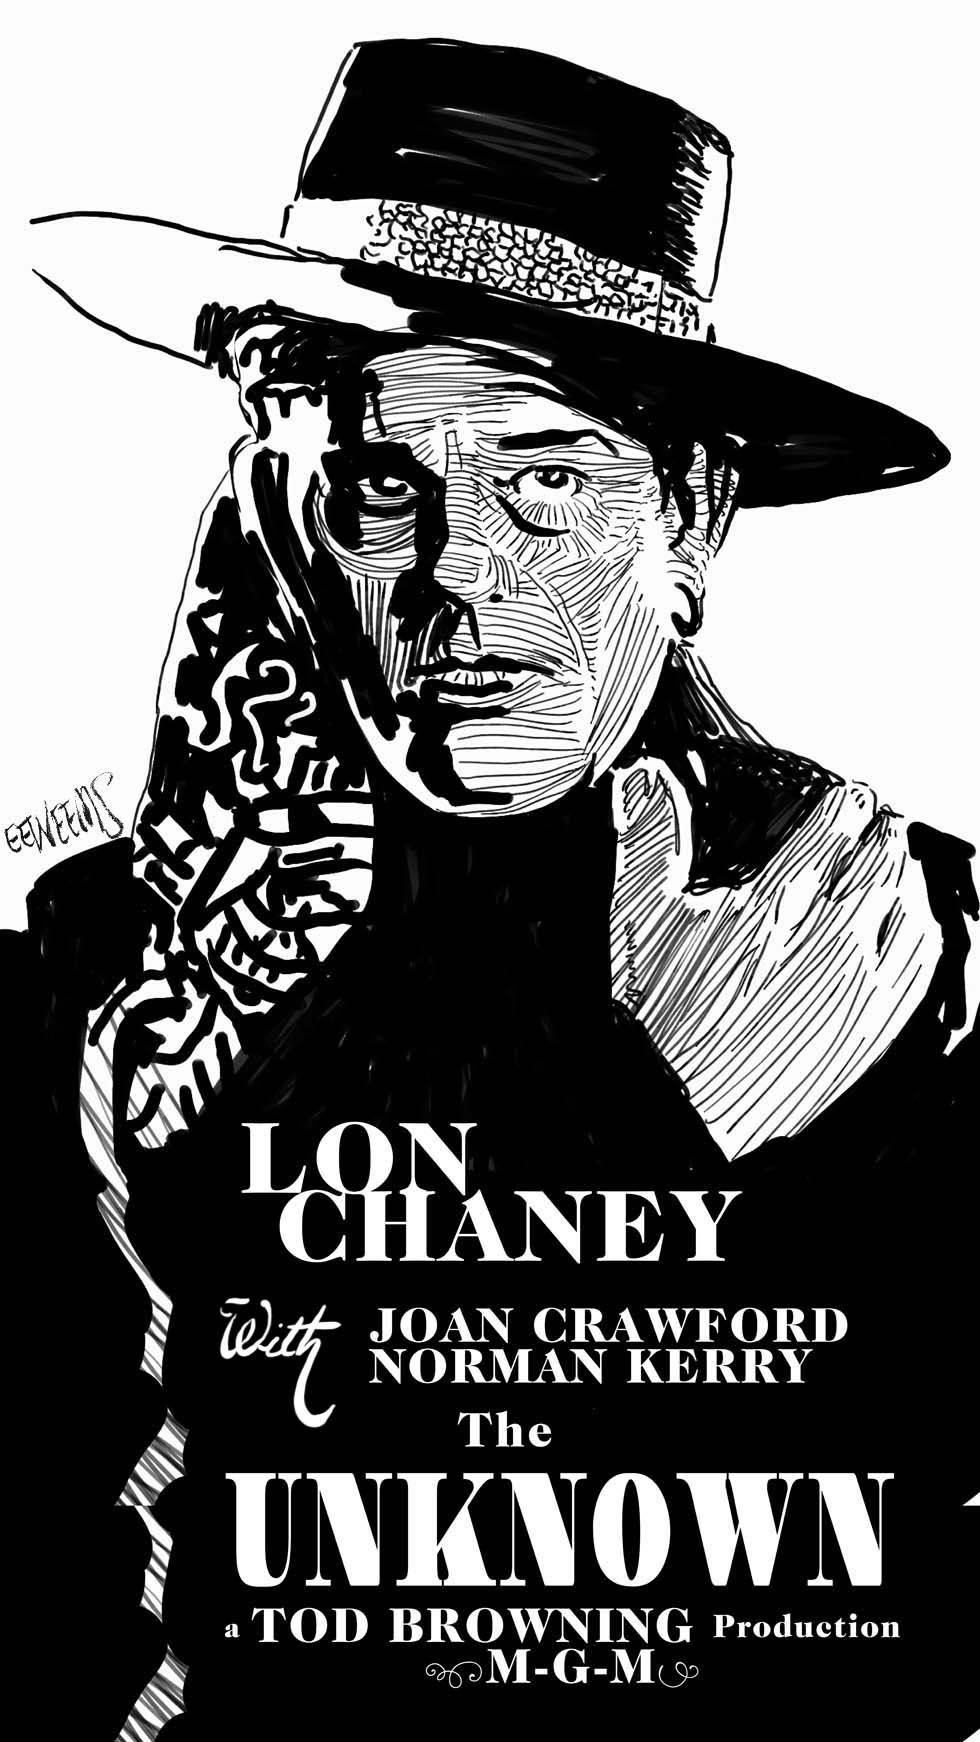 Lon Chaney the Unknown 1927 Poster Art